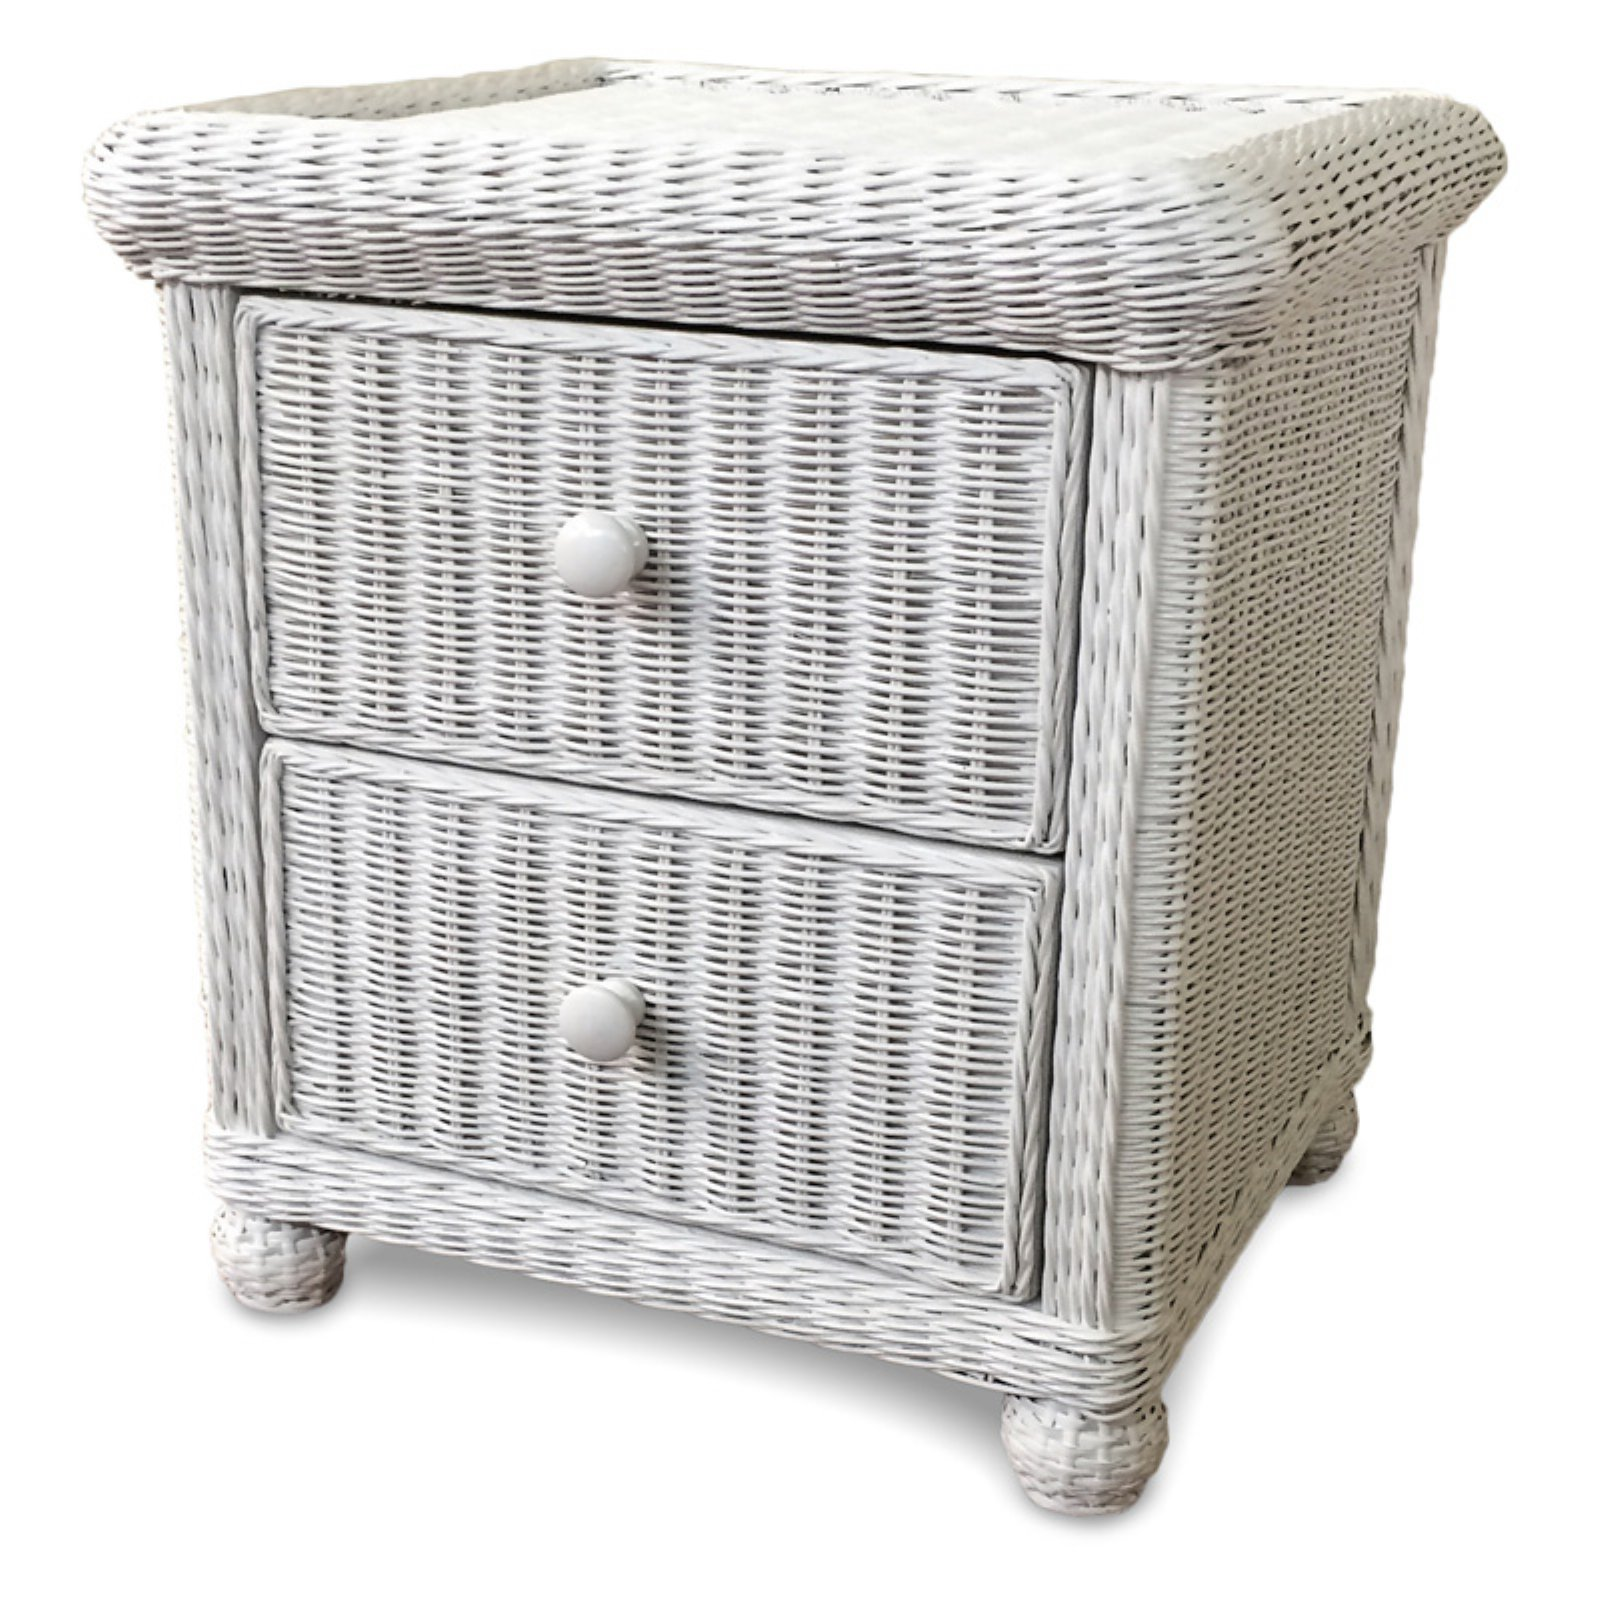 Wicker Paradise Designs 2 Drawer Nightstand